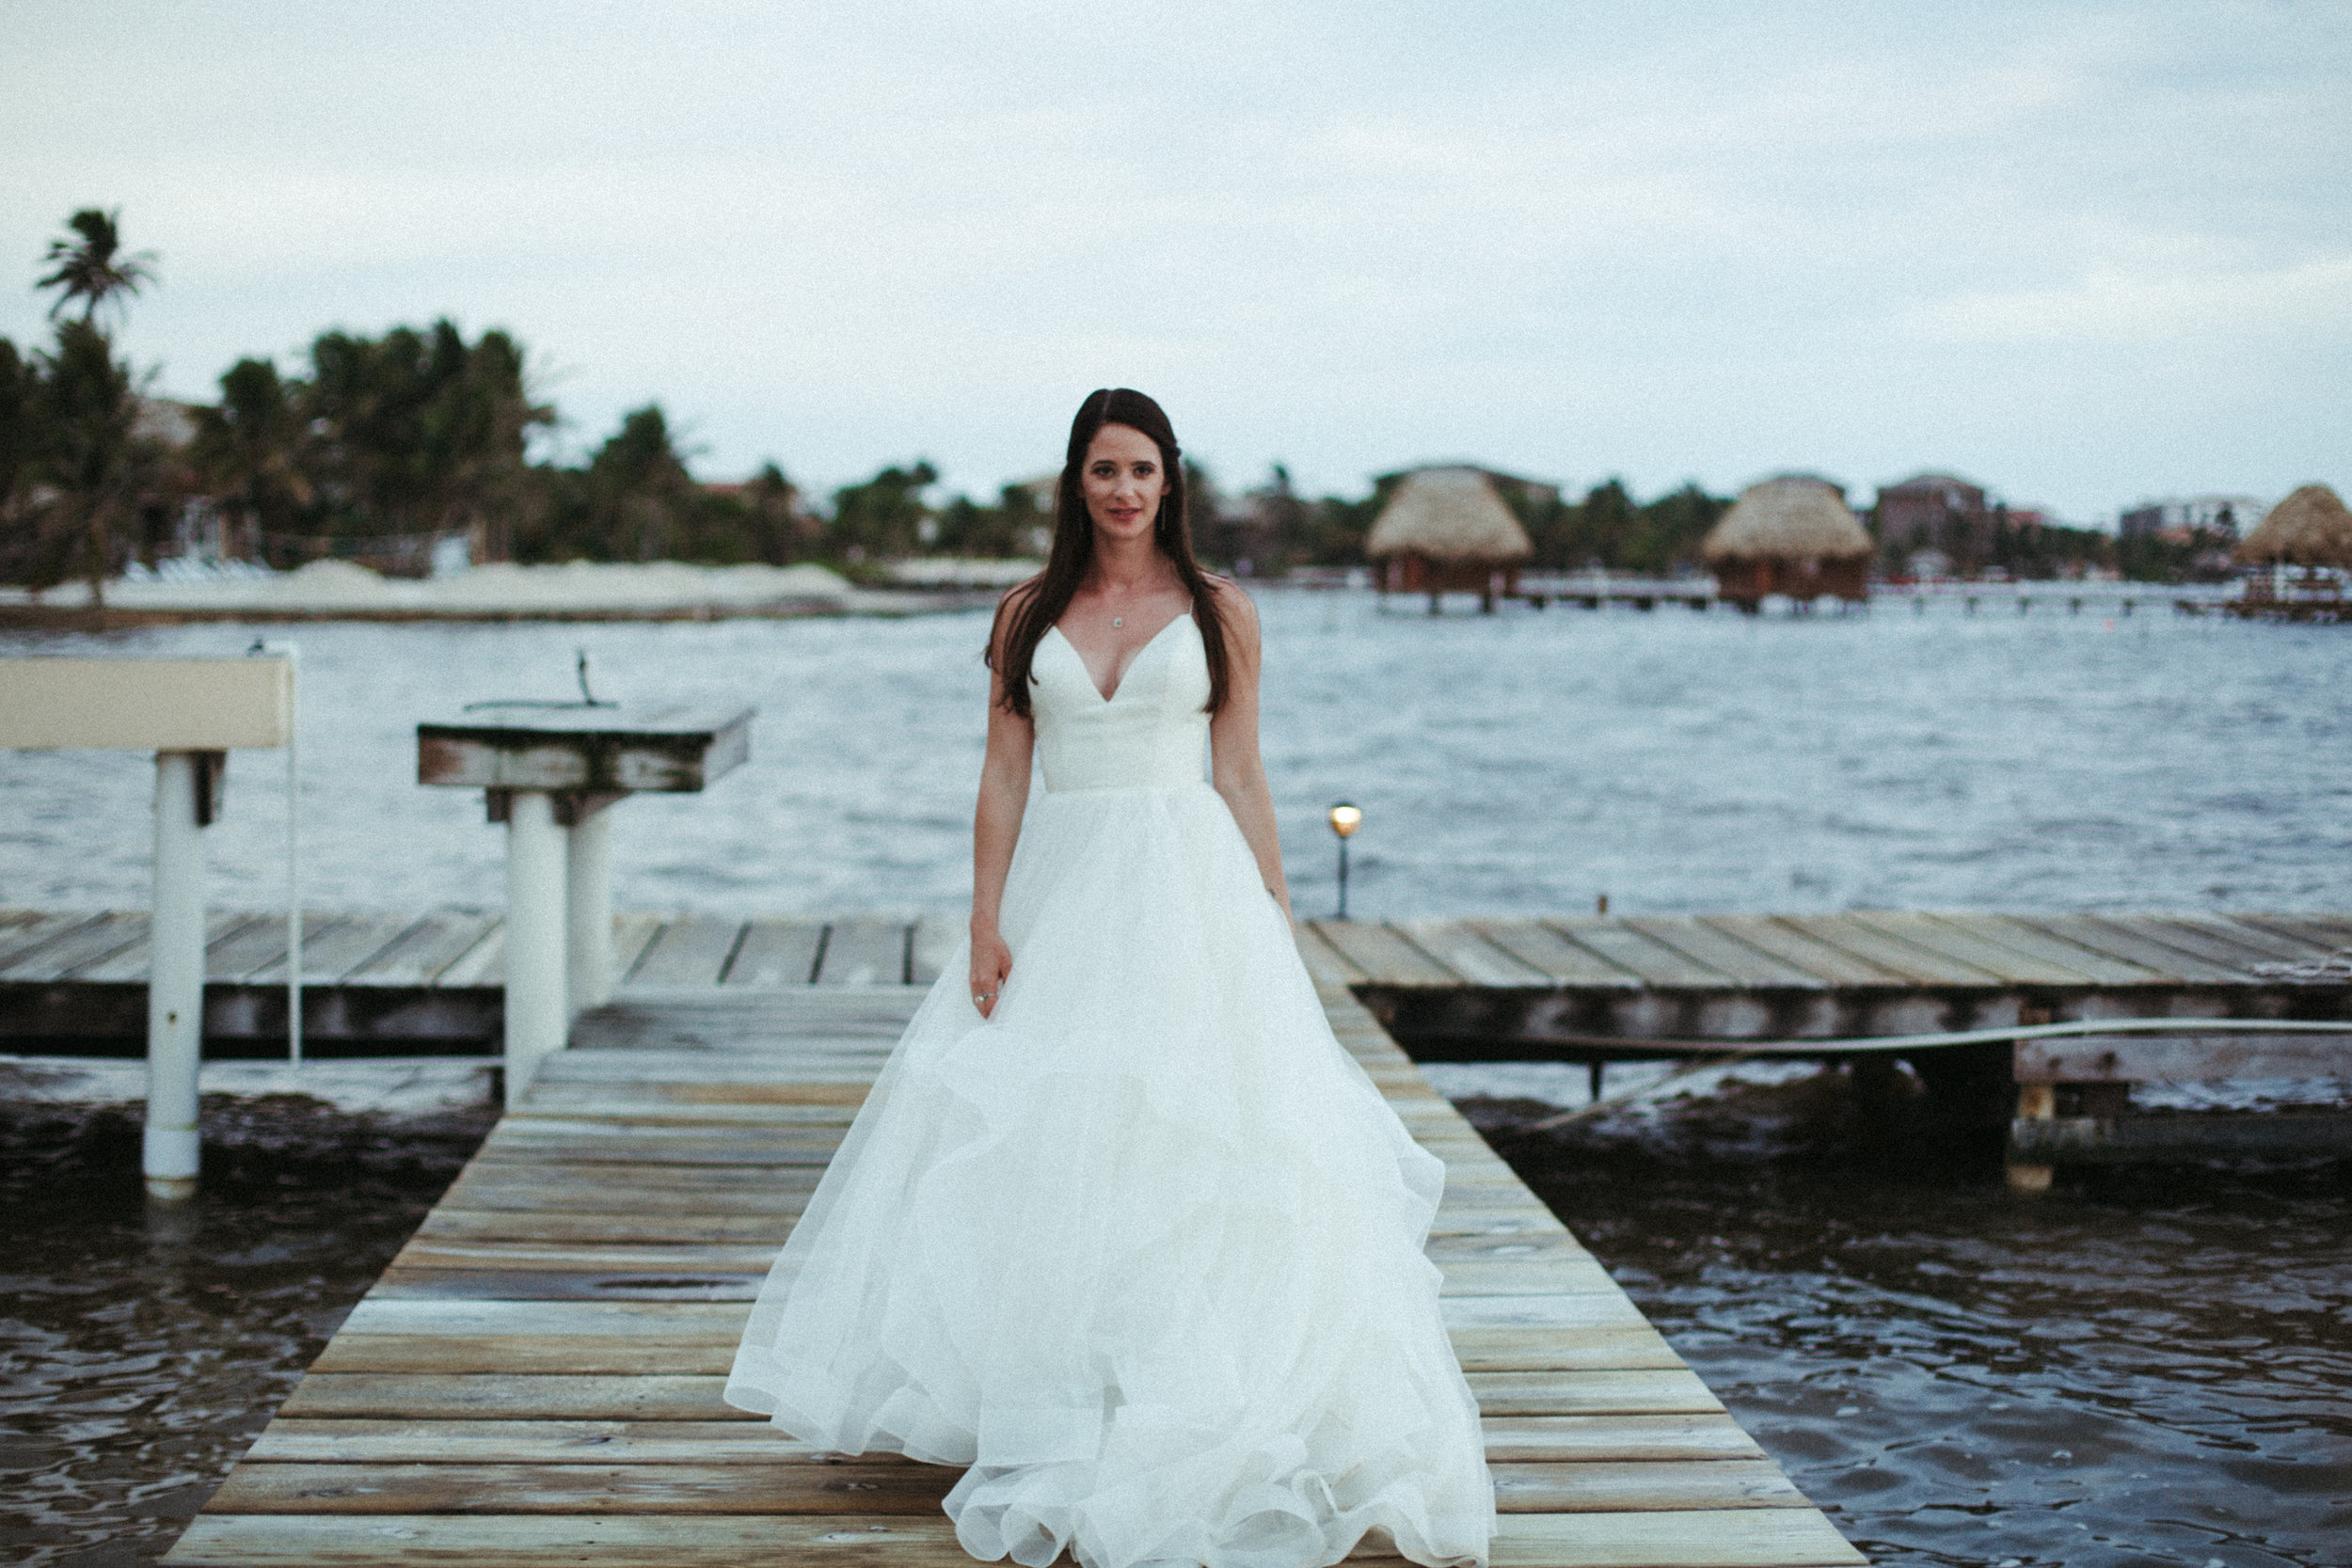 san-pescador-belize-wedding-christinemariephoto-j-k-135.jpg